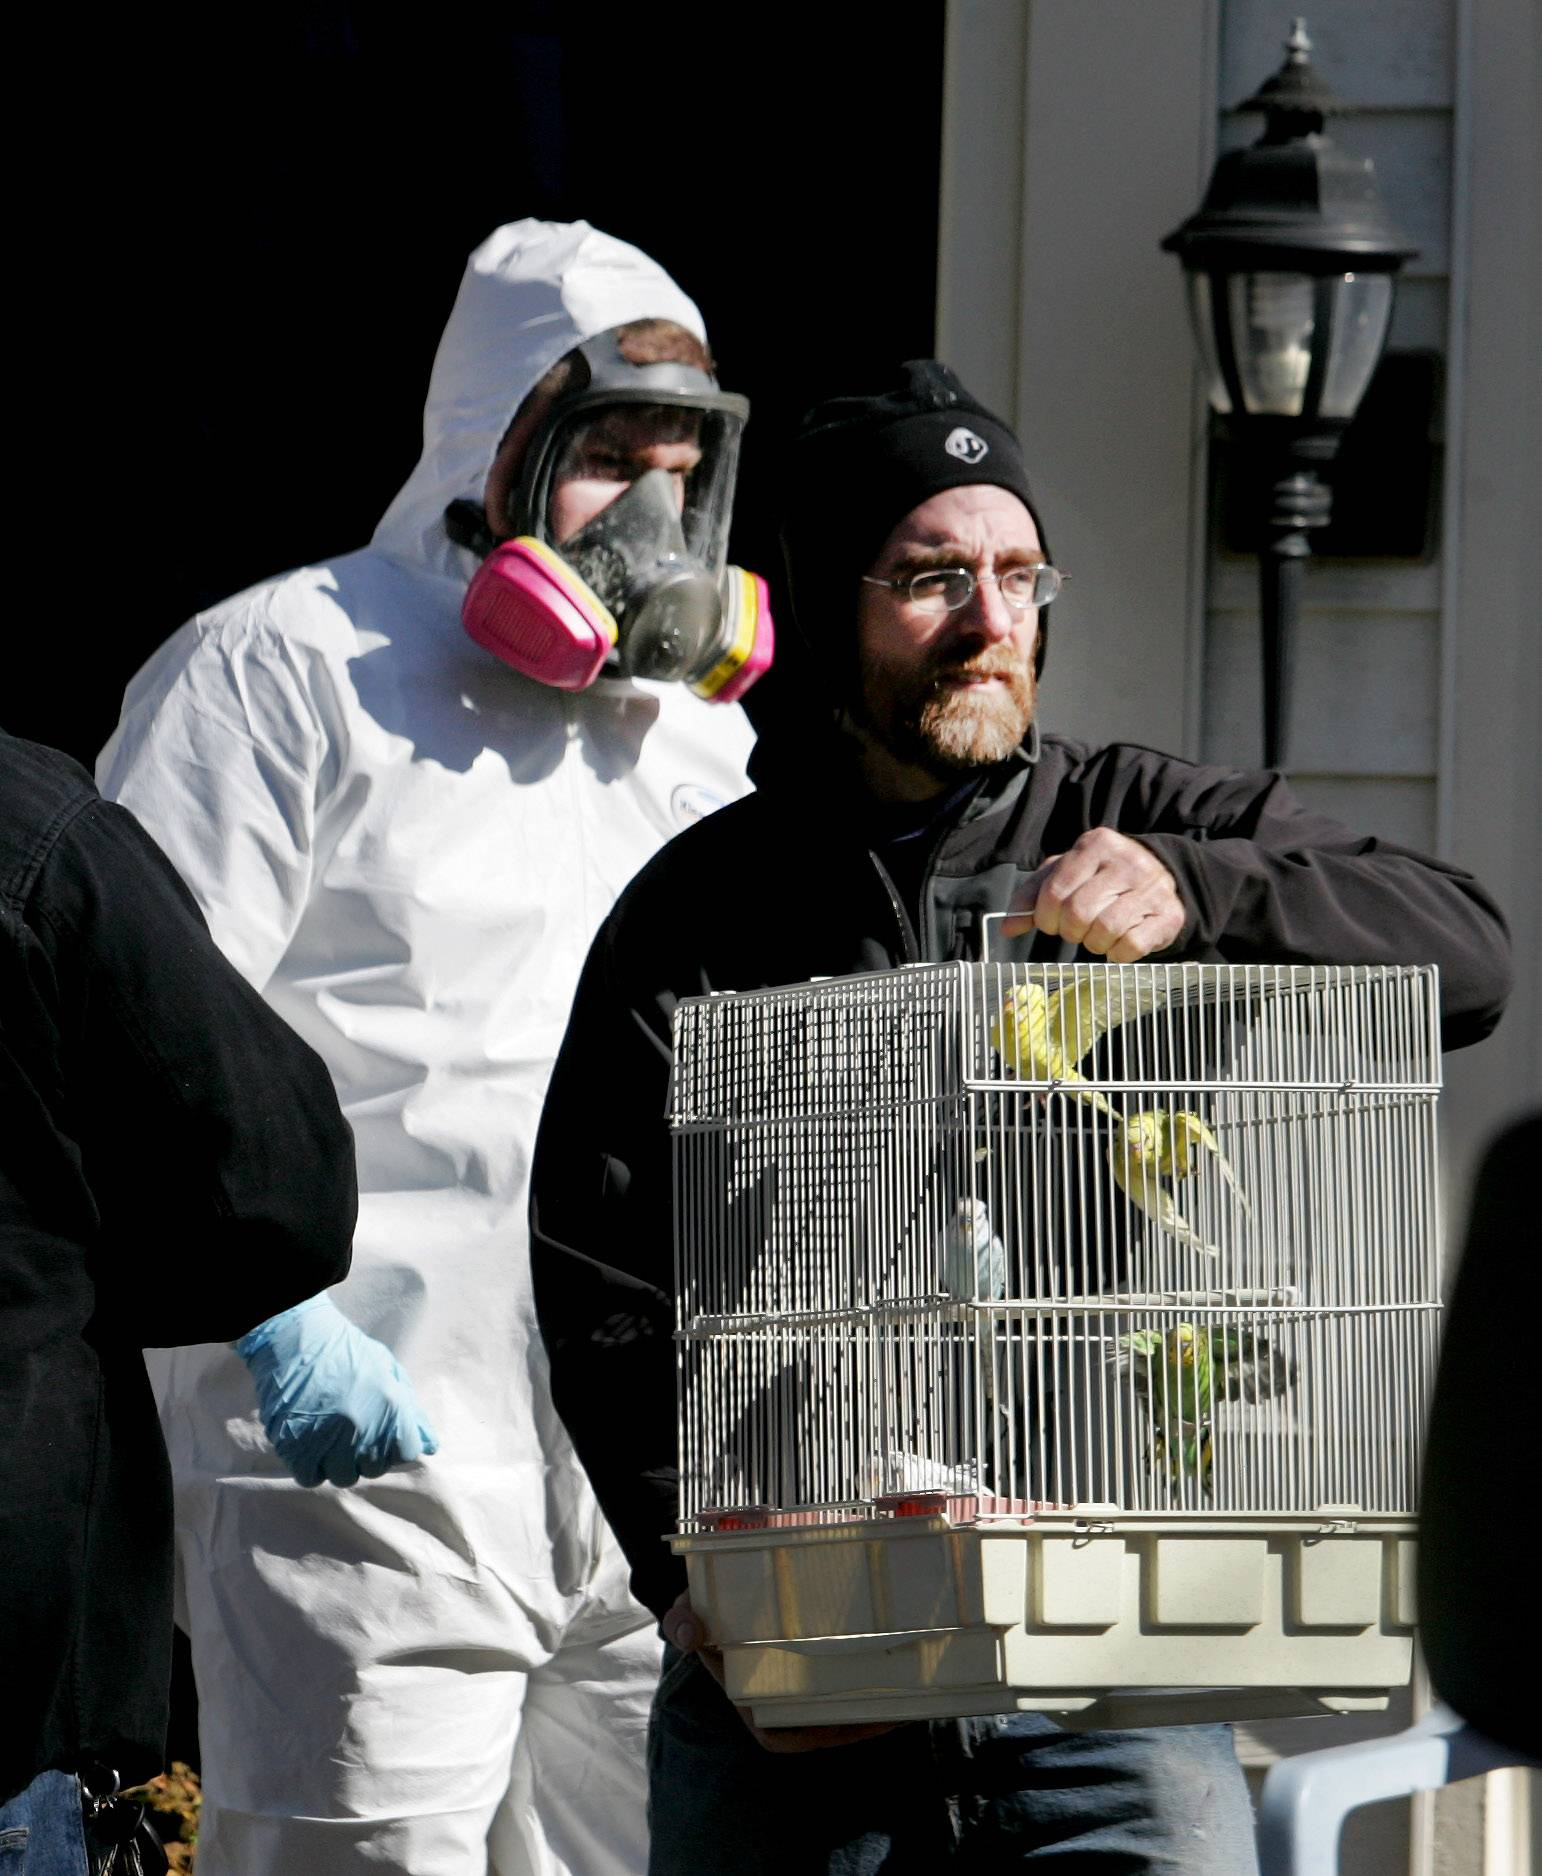 The city of Aurora took over the cleanup of the Aurora house of Dave Skeberdis after police found 120 dead birds and 378 in cages or flying about the filth inside in 2012.